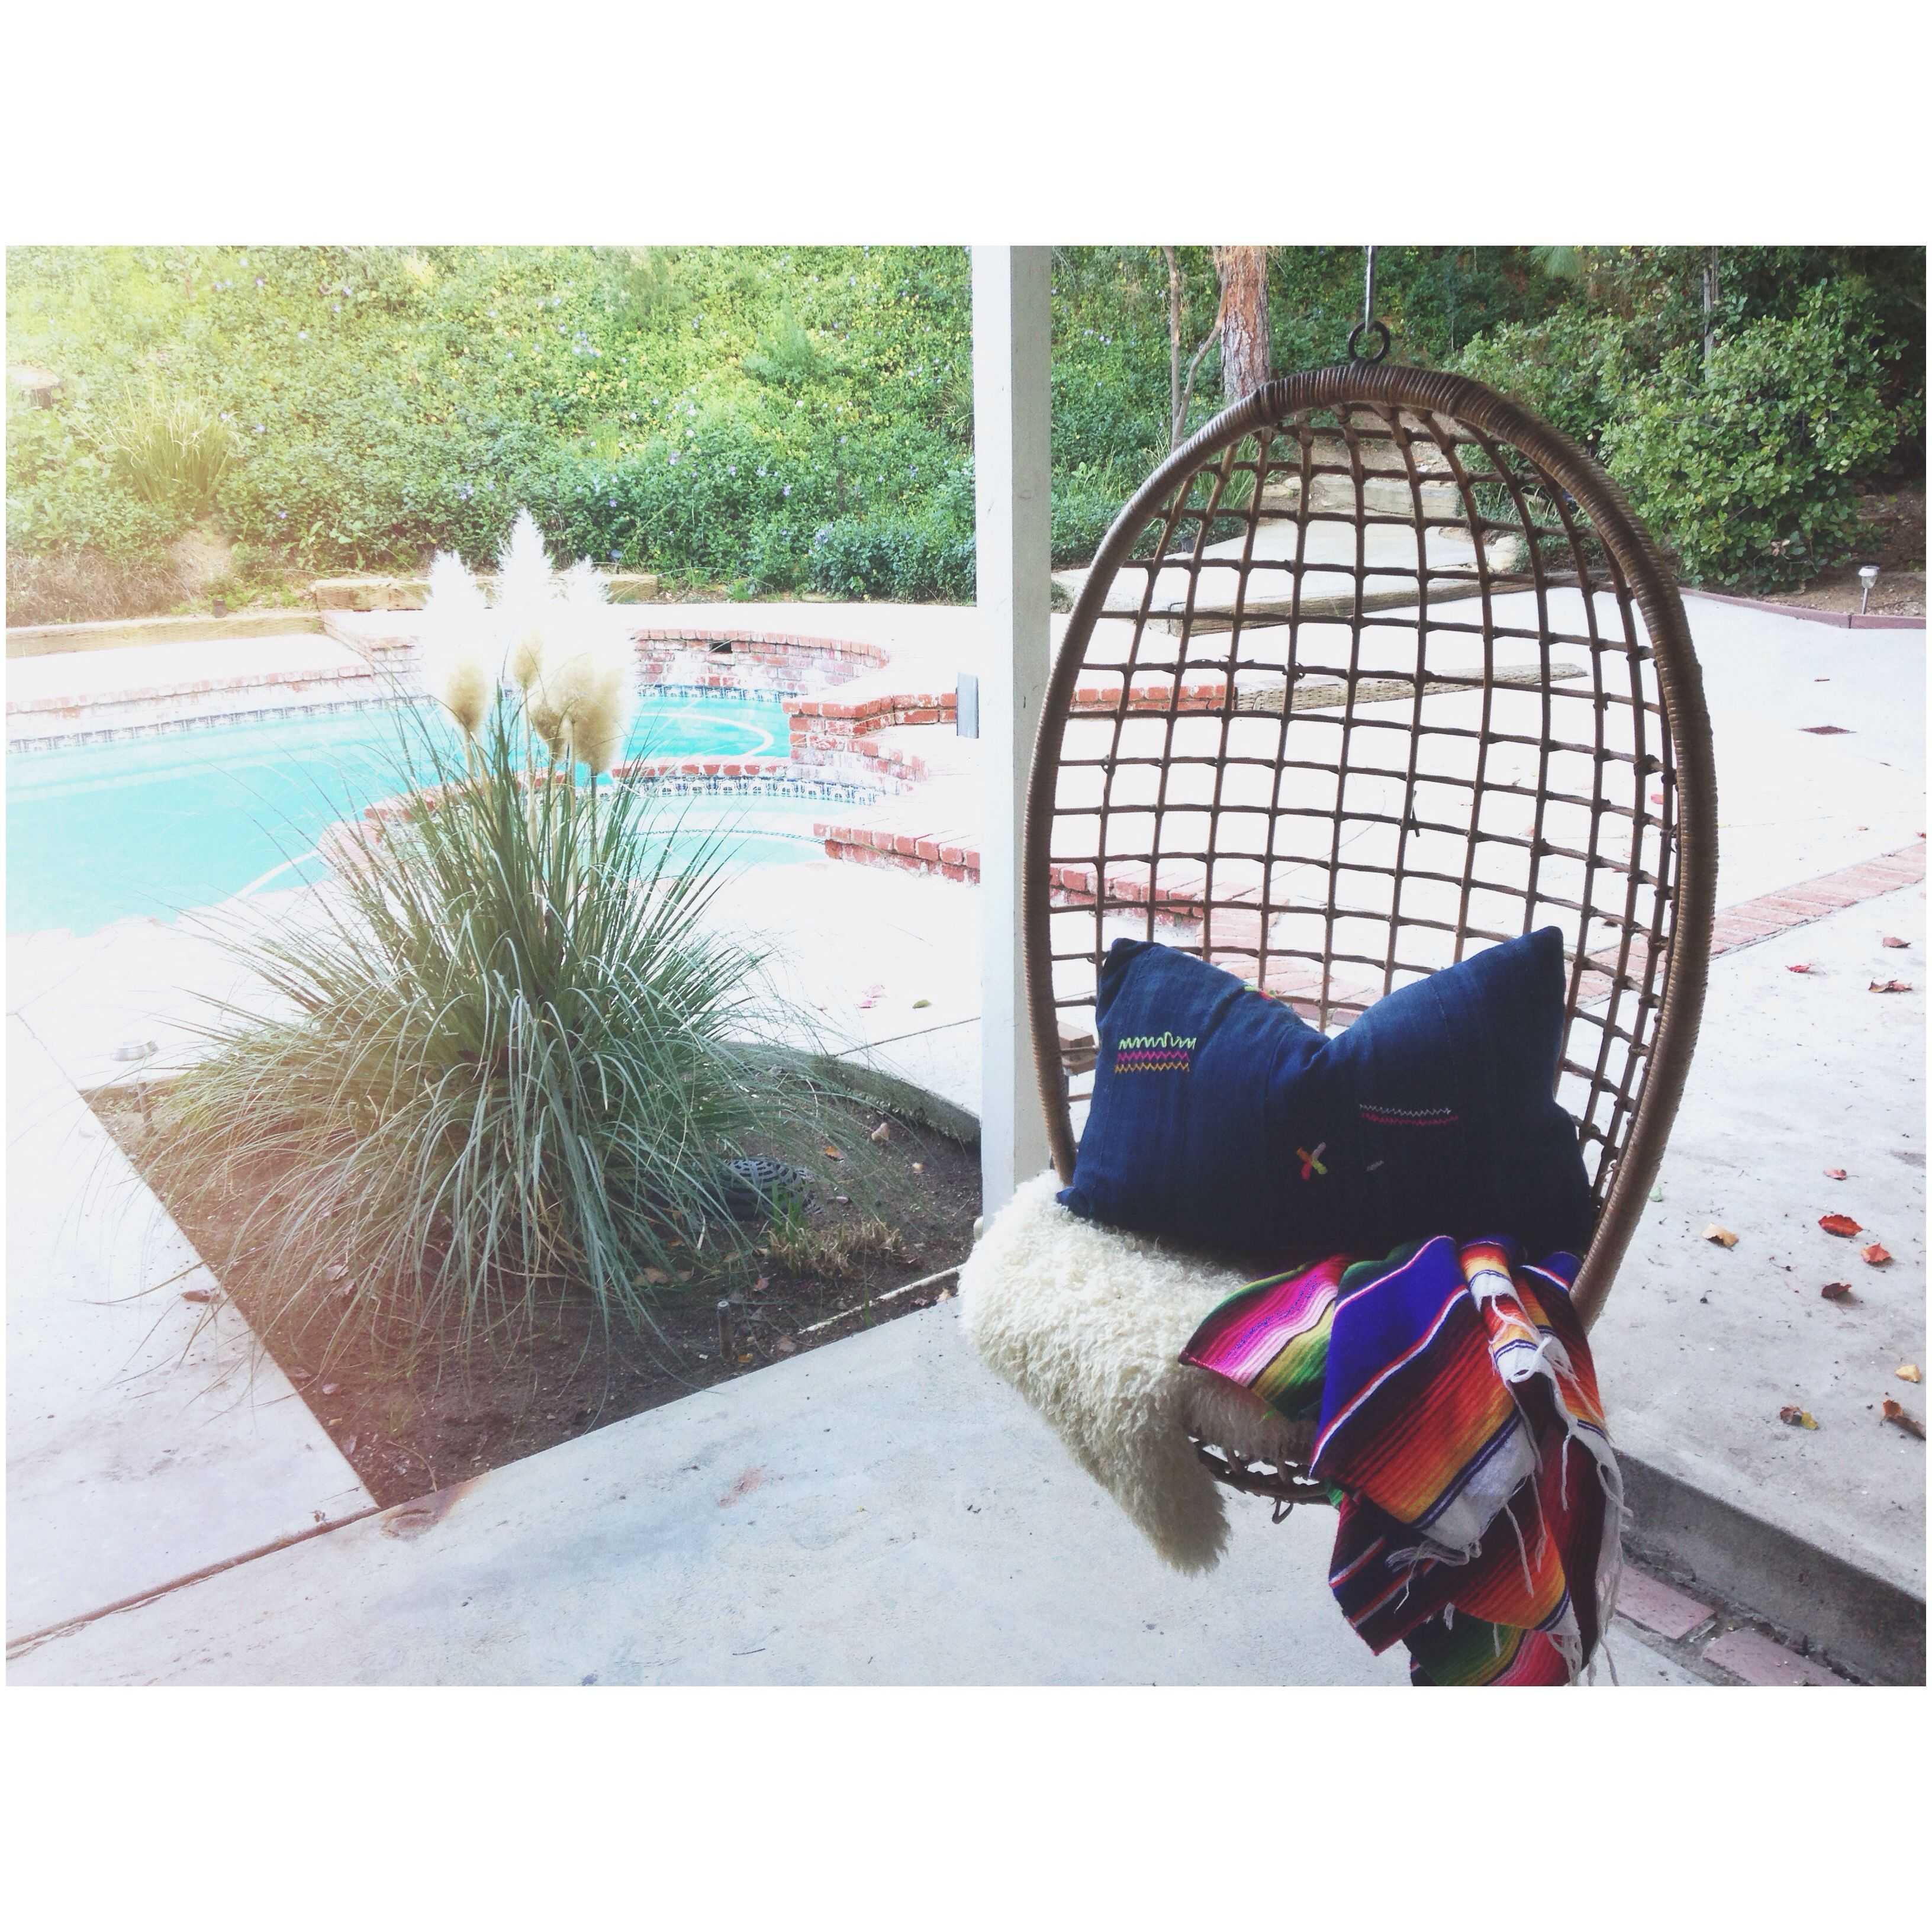 Amber Interiors instagram (With images) | Backyard ... on Amber Outdoor Living id=47020